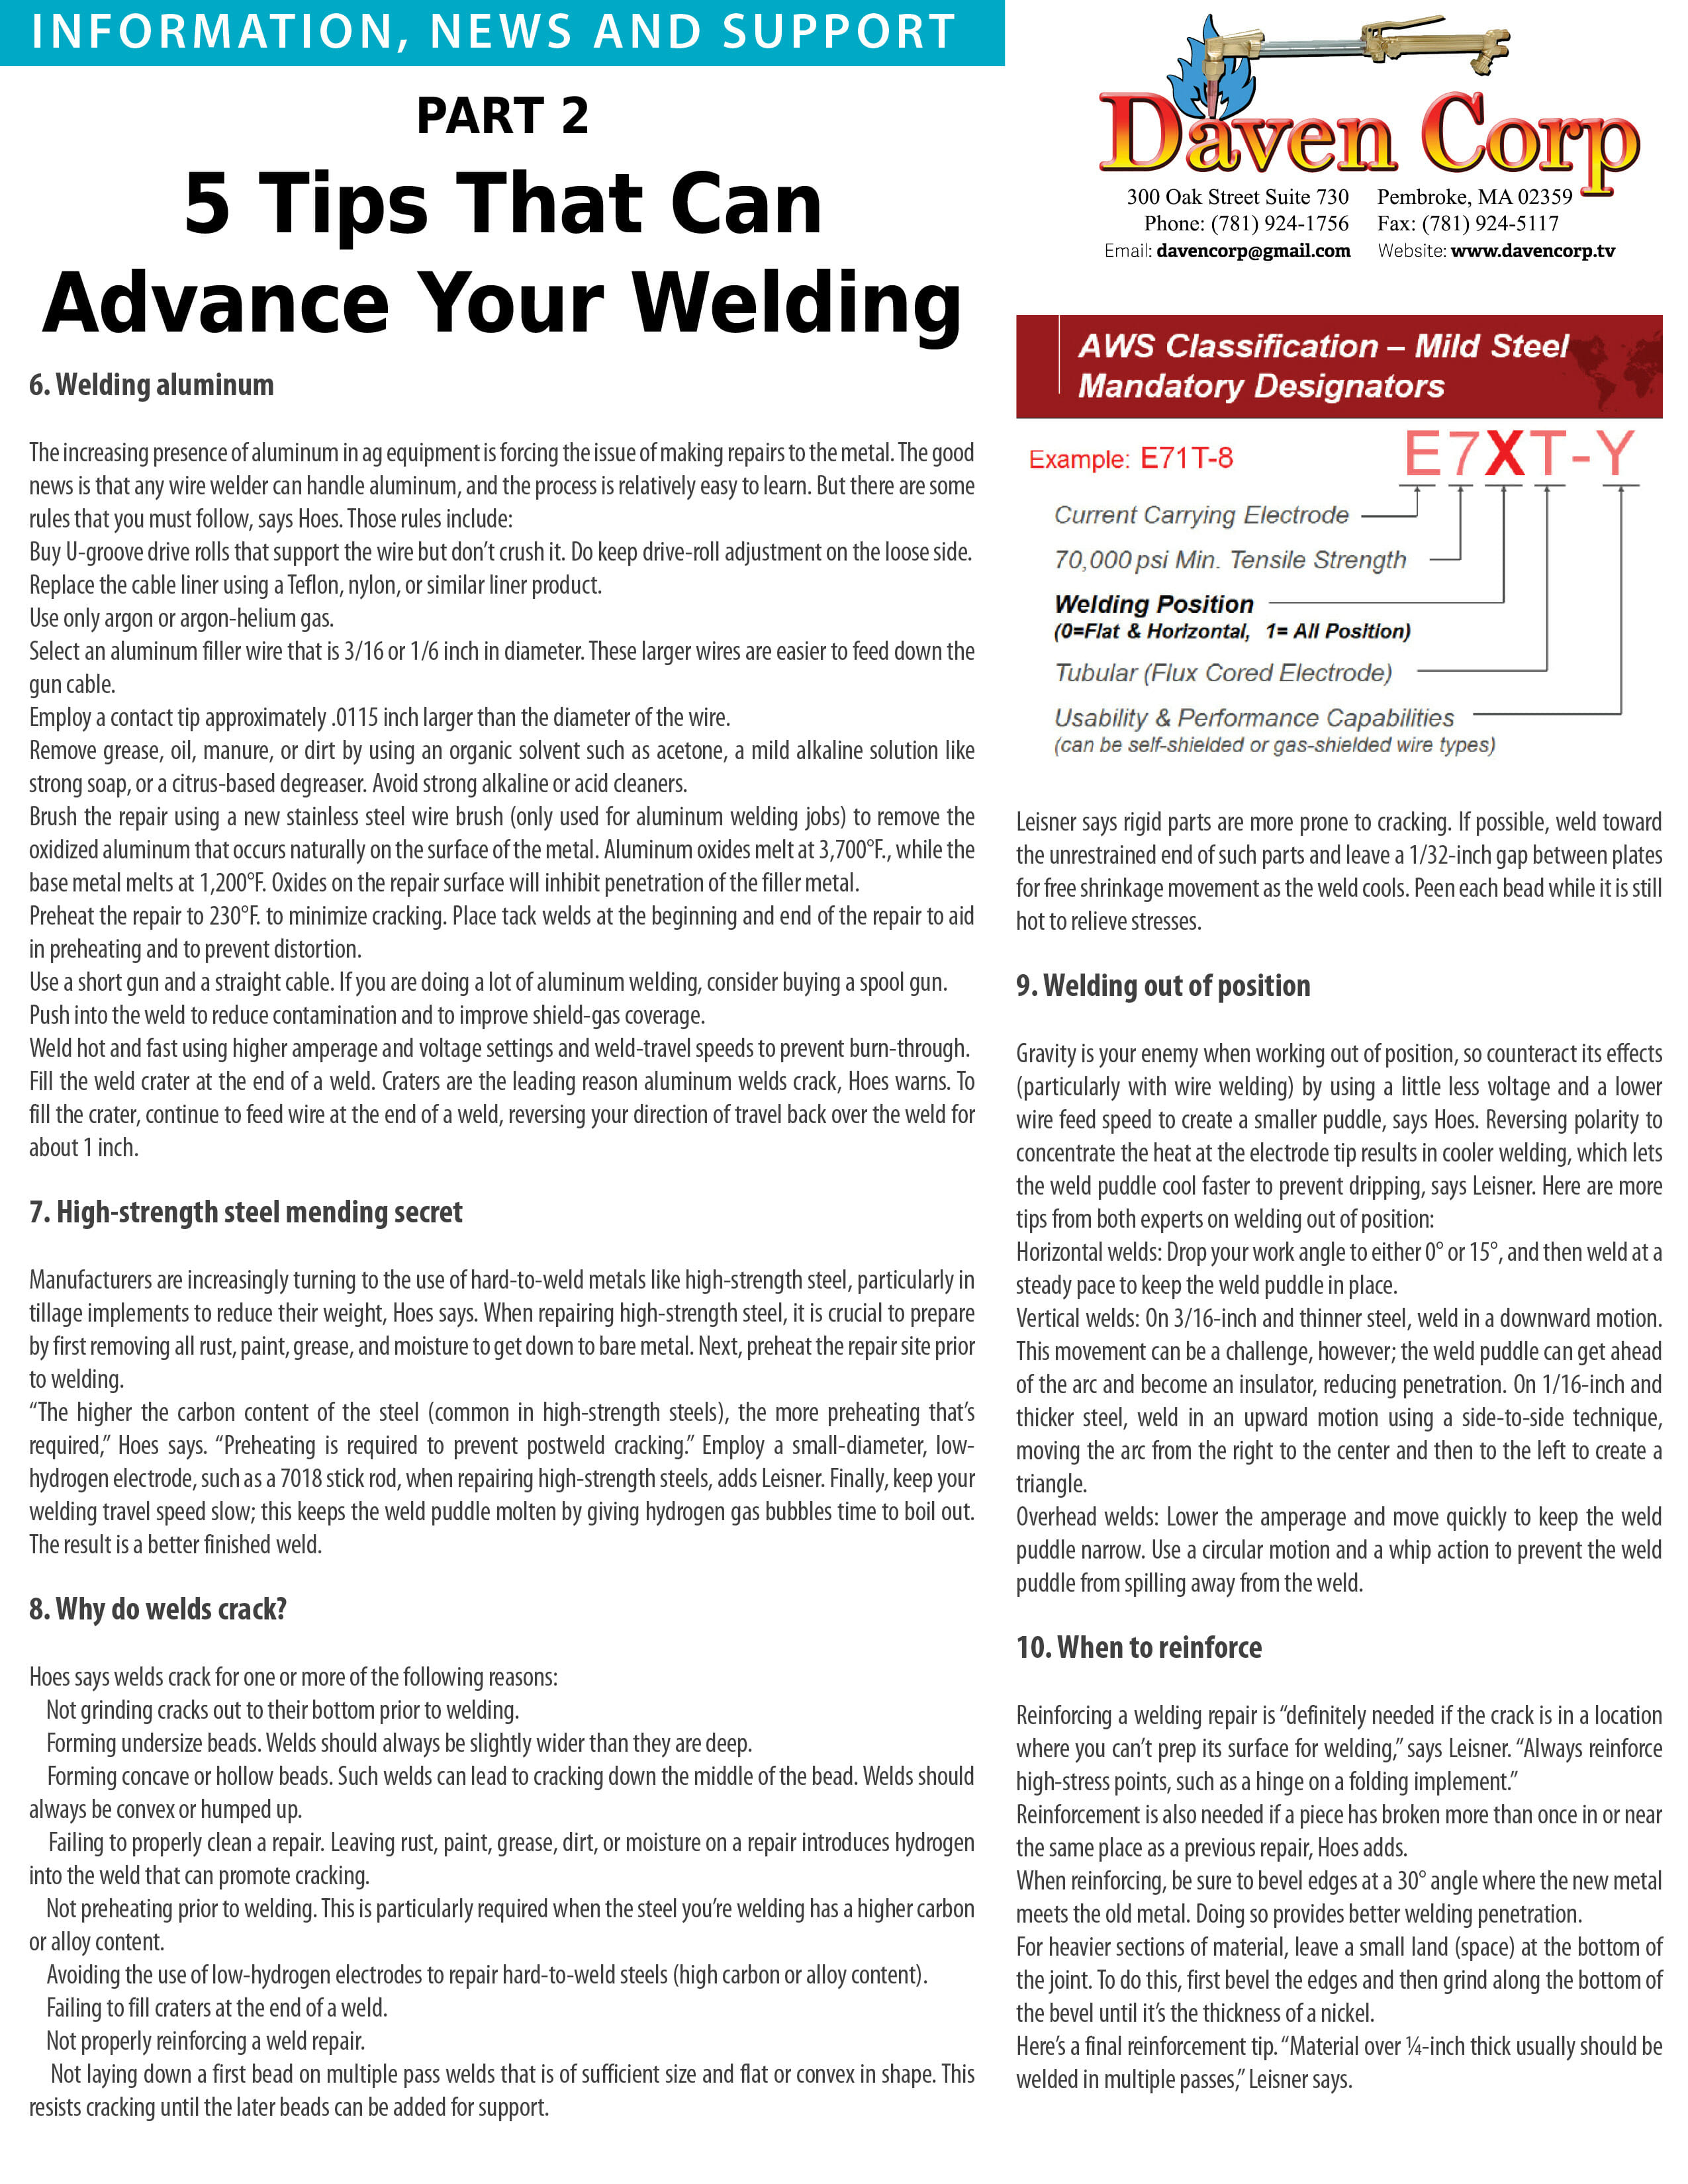 Tips – Welding Supplies, Training, Repairs, Service